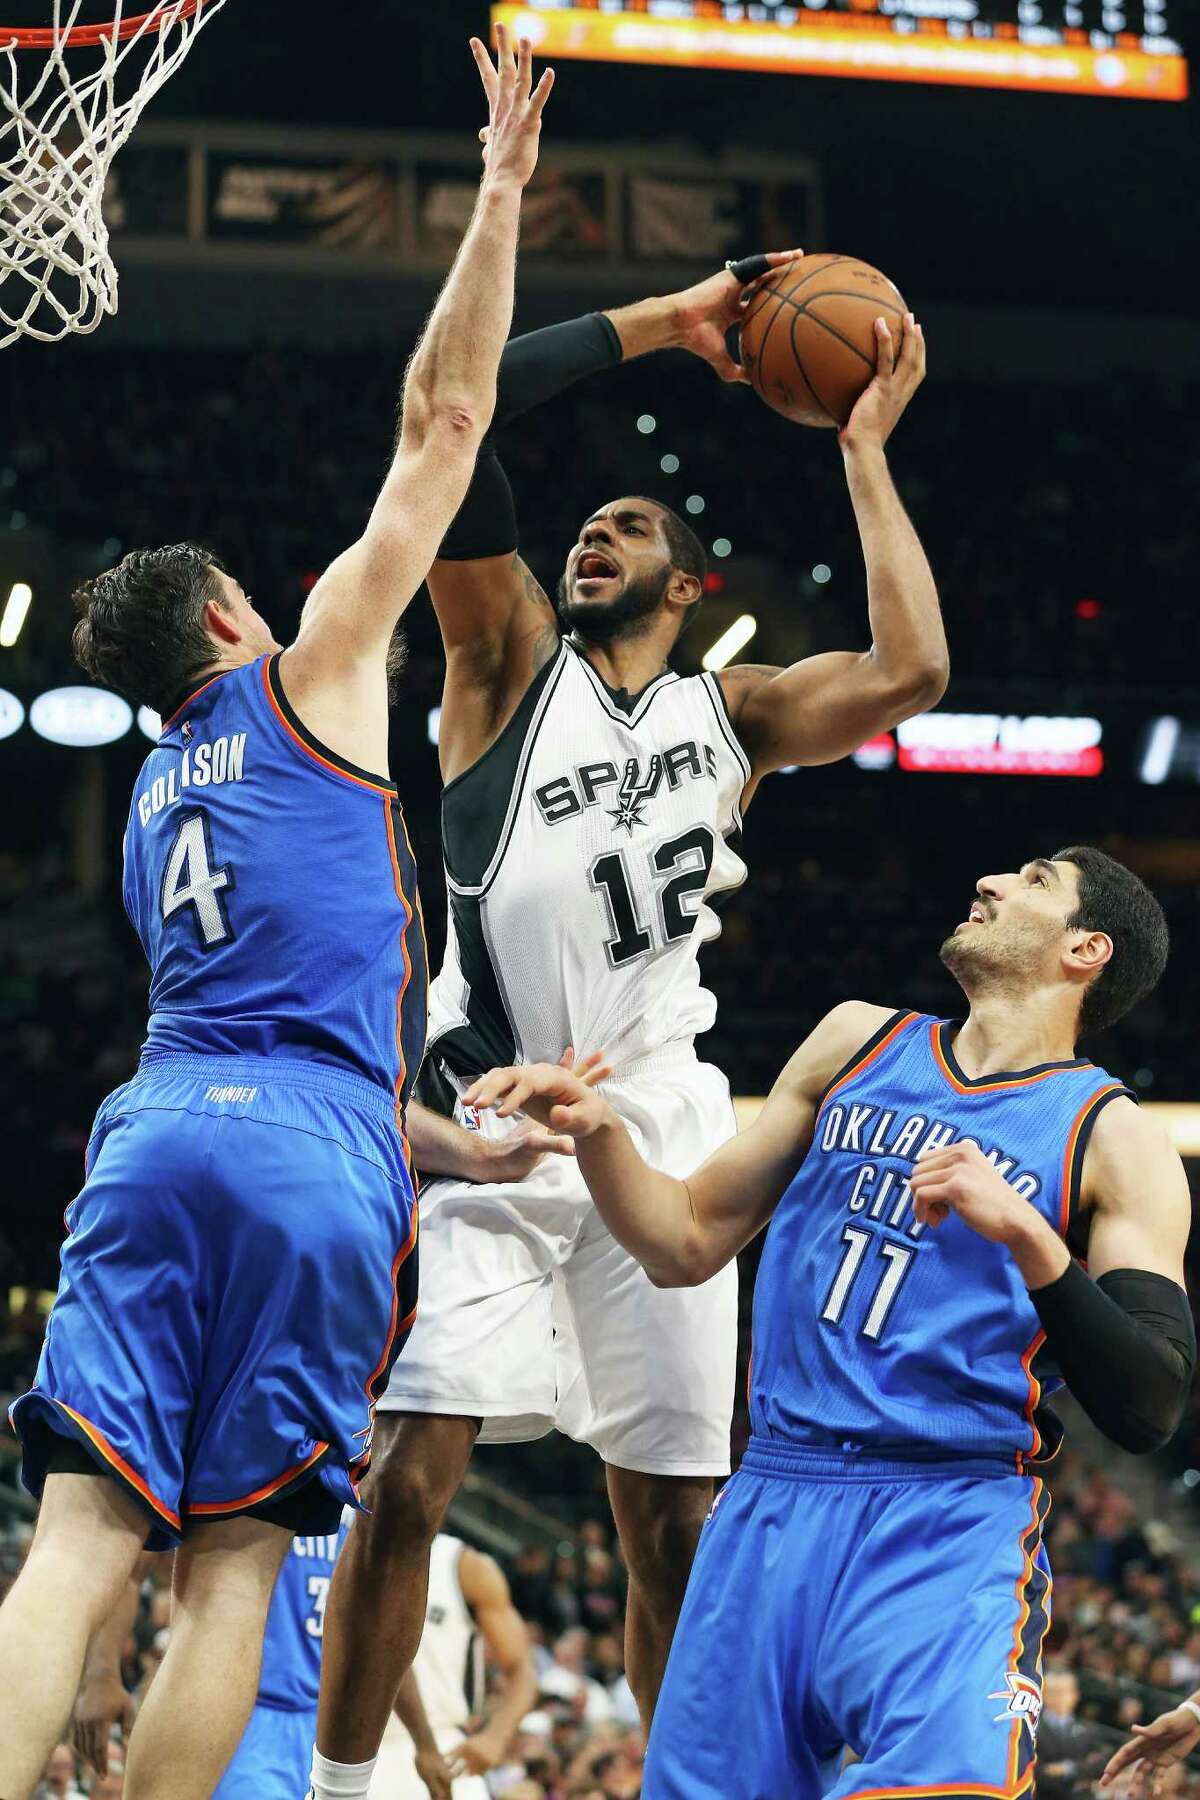 LaMarcus Aldridge takes it up over Nick Collison as Enes Kanter waits on the floor as the Spurs host Oklahoma at the AT&T Center on April 12, 2016.